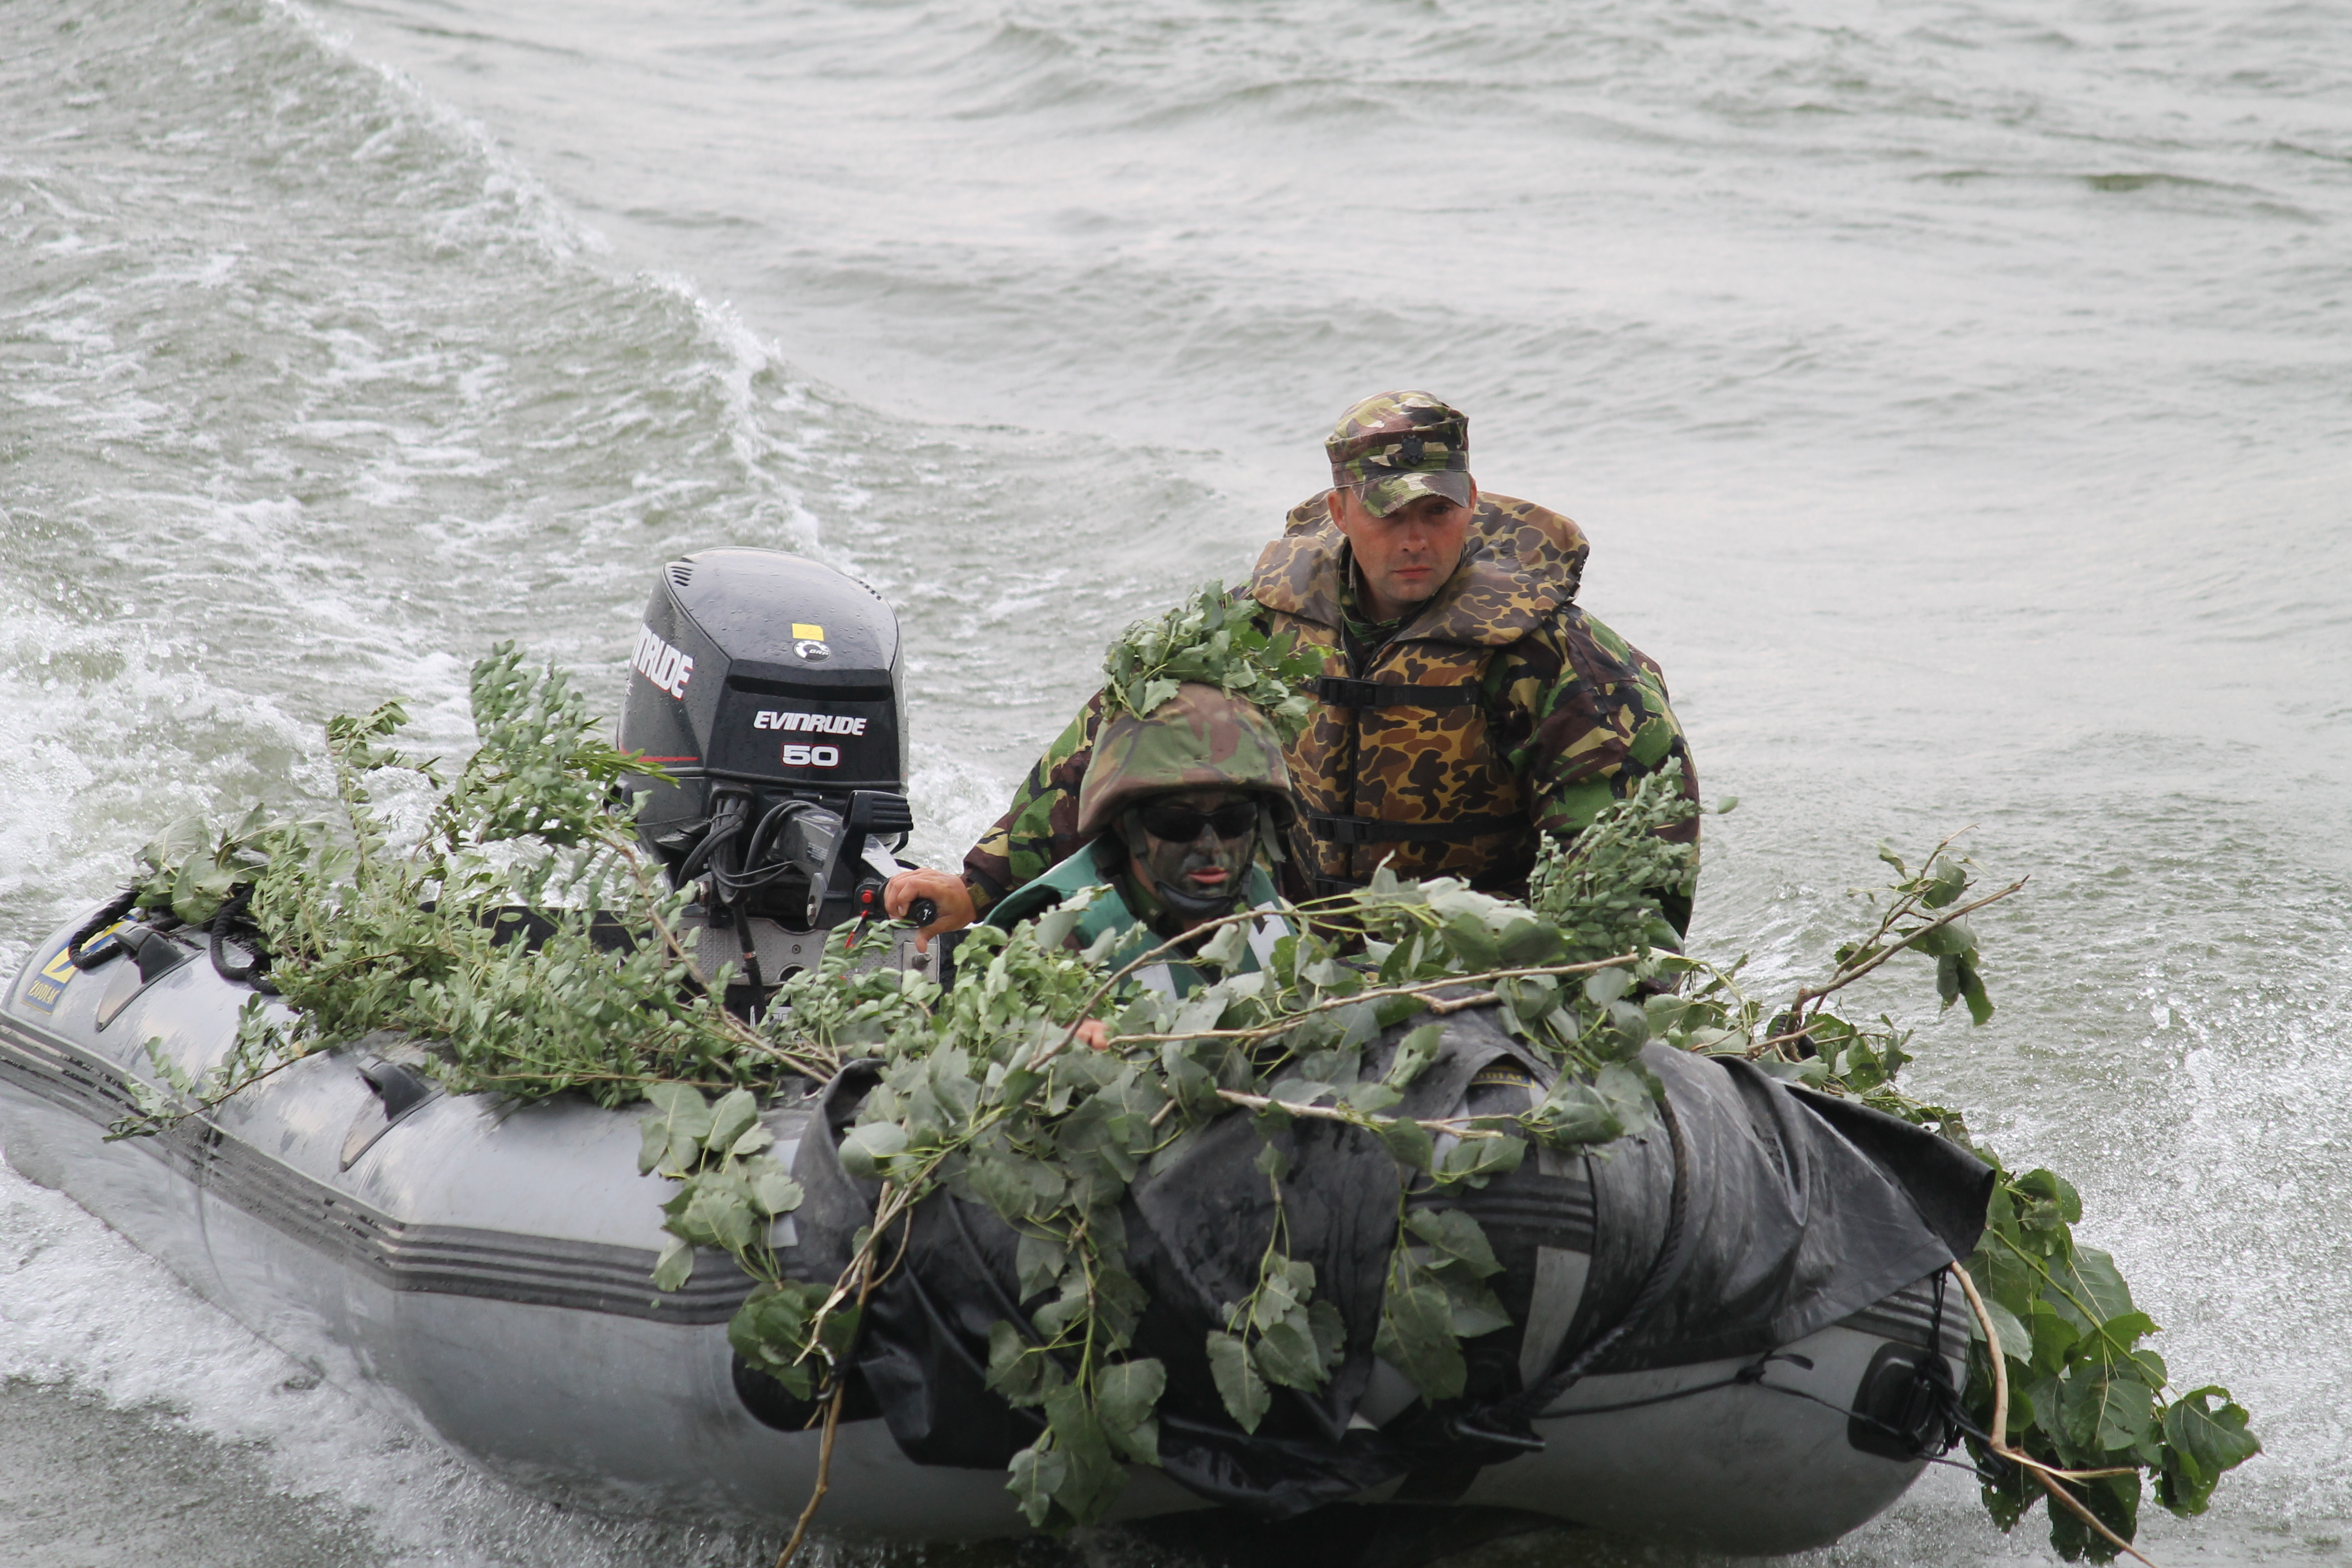 A camouflaged raft zips across the Danube, picking up more troops to carry back. The process of moving units across the river several times took just a few minutes. (Jen Judson/Staff)